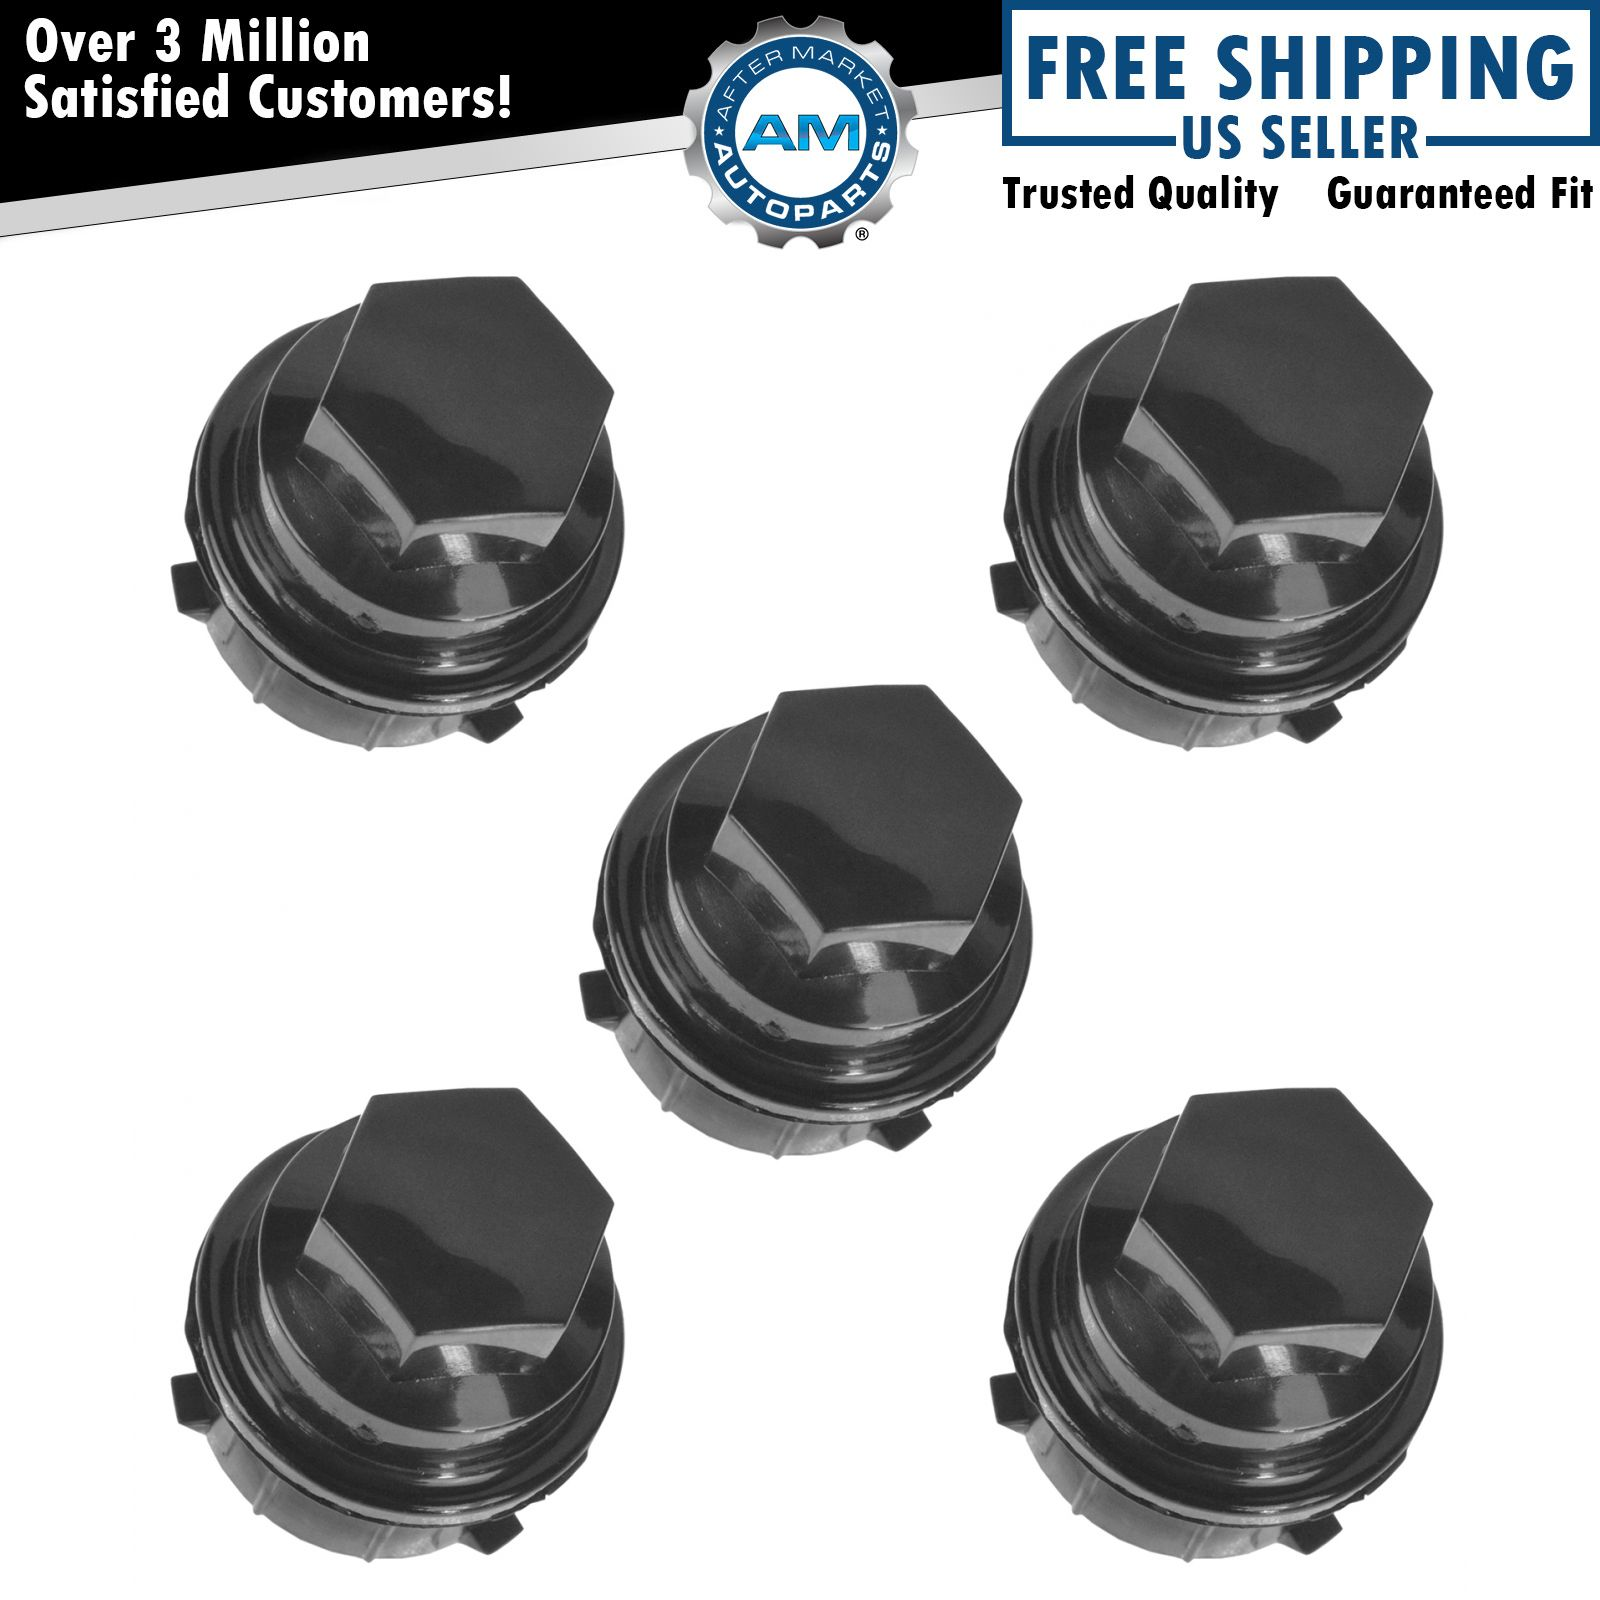 Oem 9594435 Wheel Lug Nut Cap Cover Black Set Of 5 For Pontiac Chevy Buick Olds Ebay